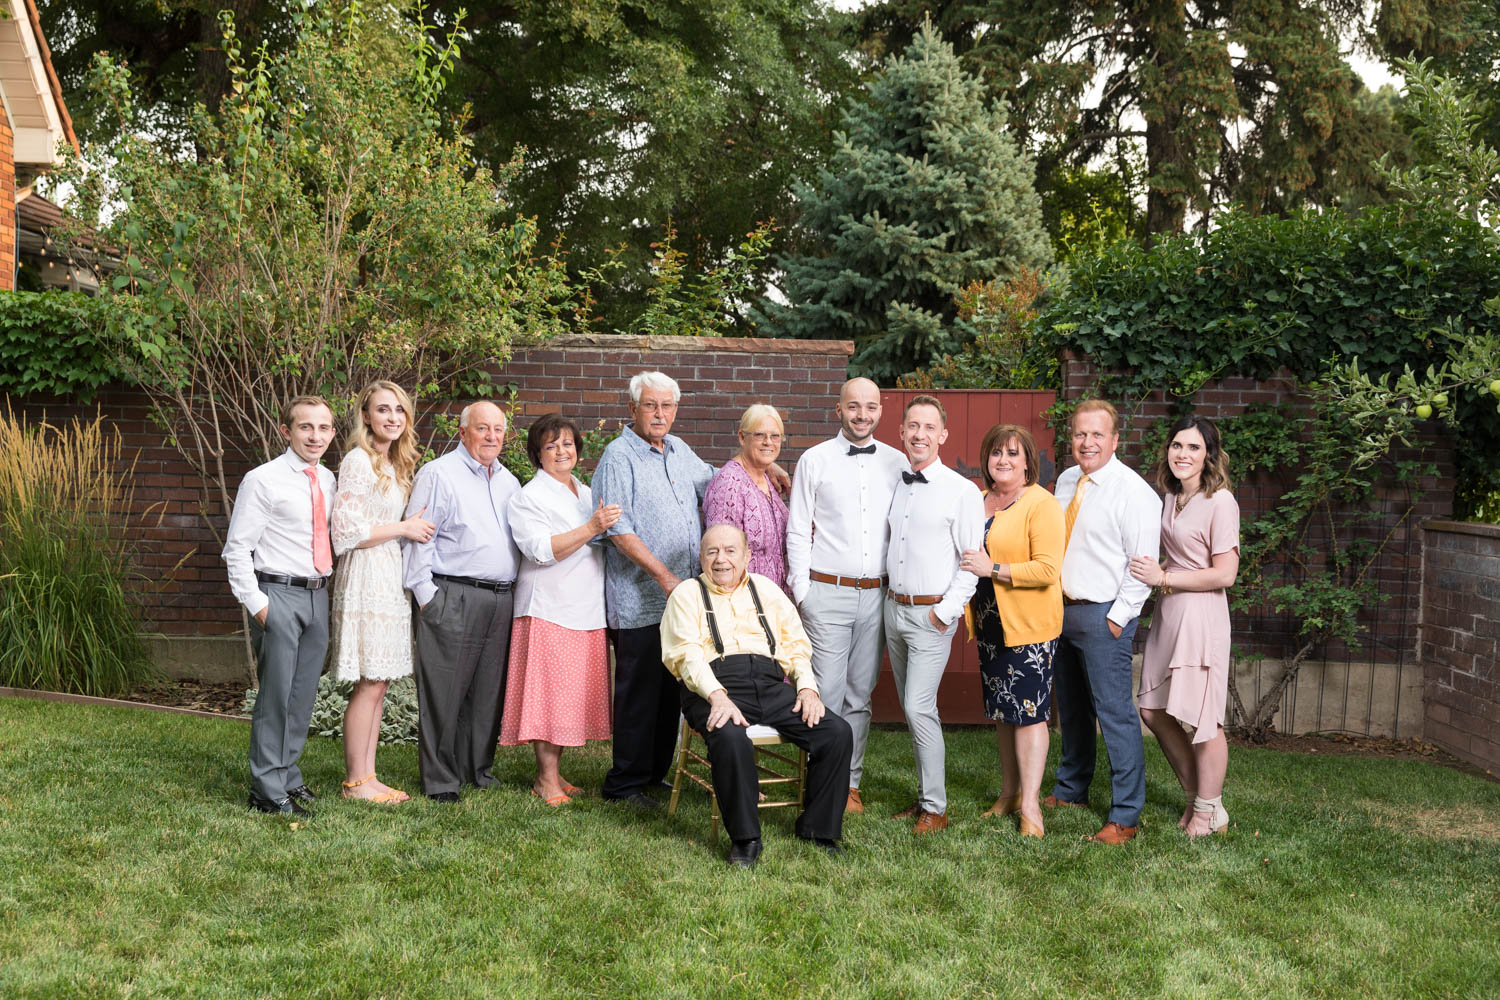 The family before the reception